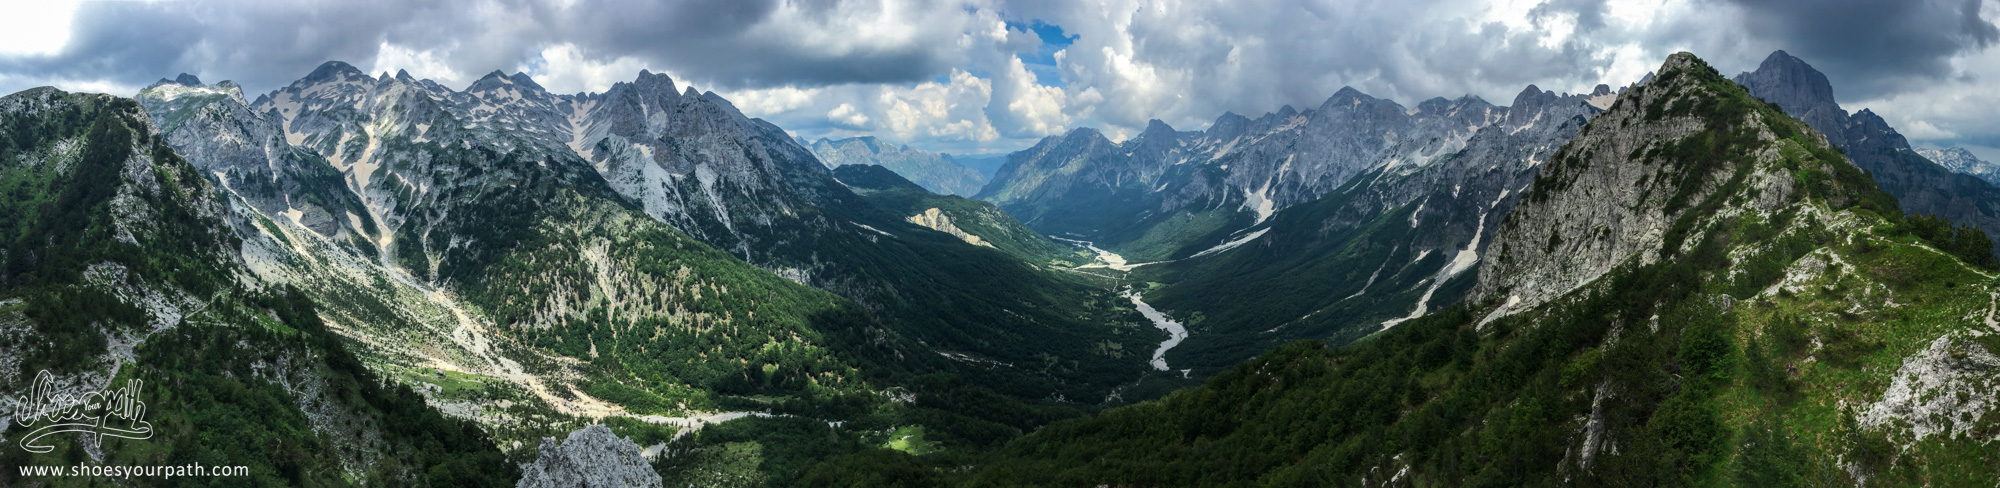 Valbona pass - Albanie - Peaks of the Balkans